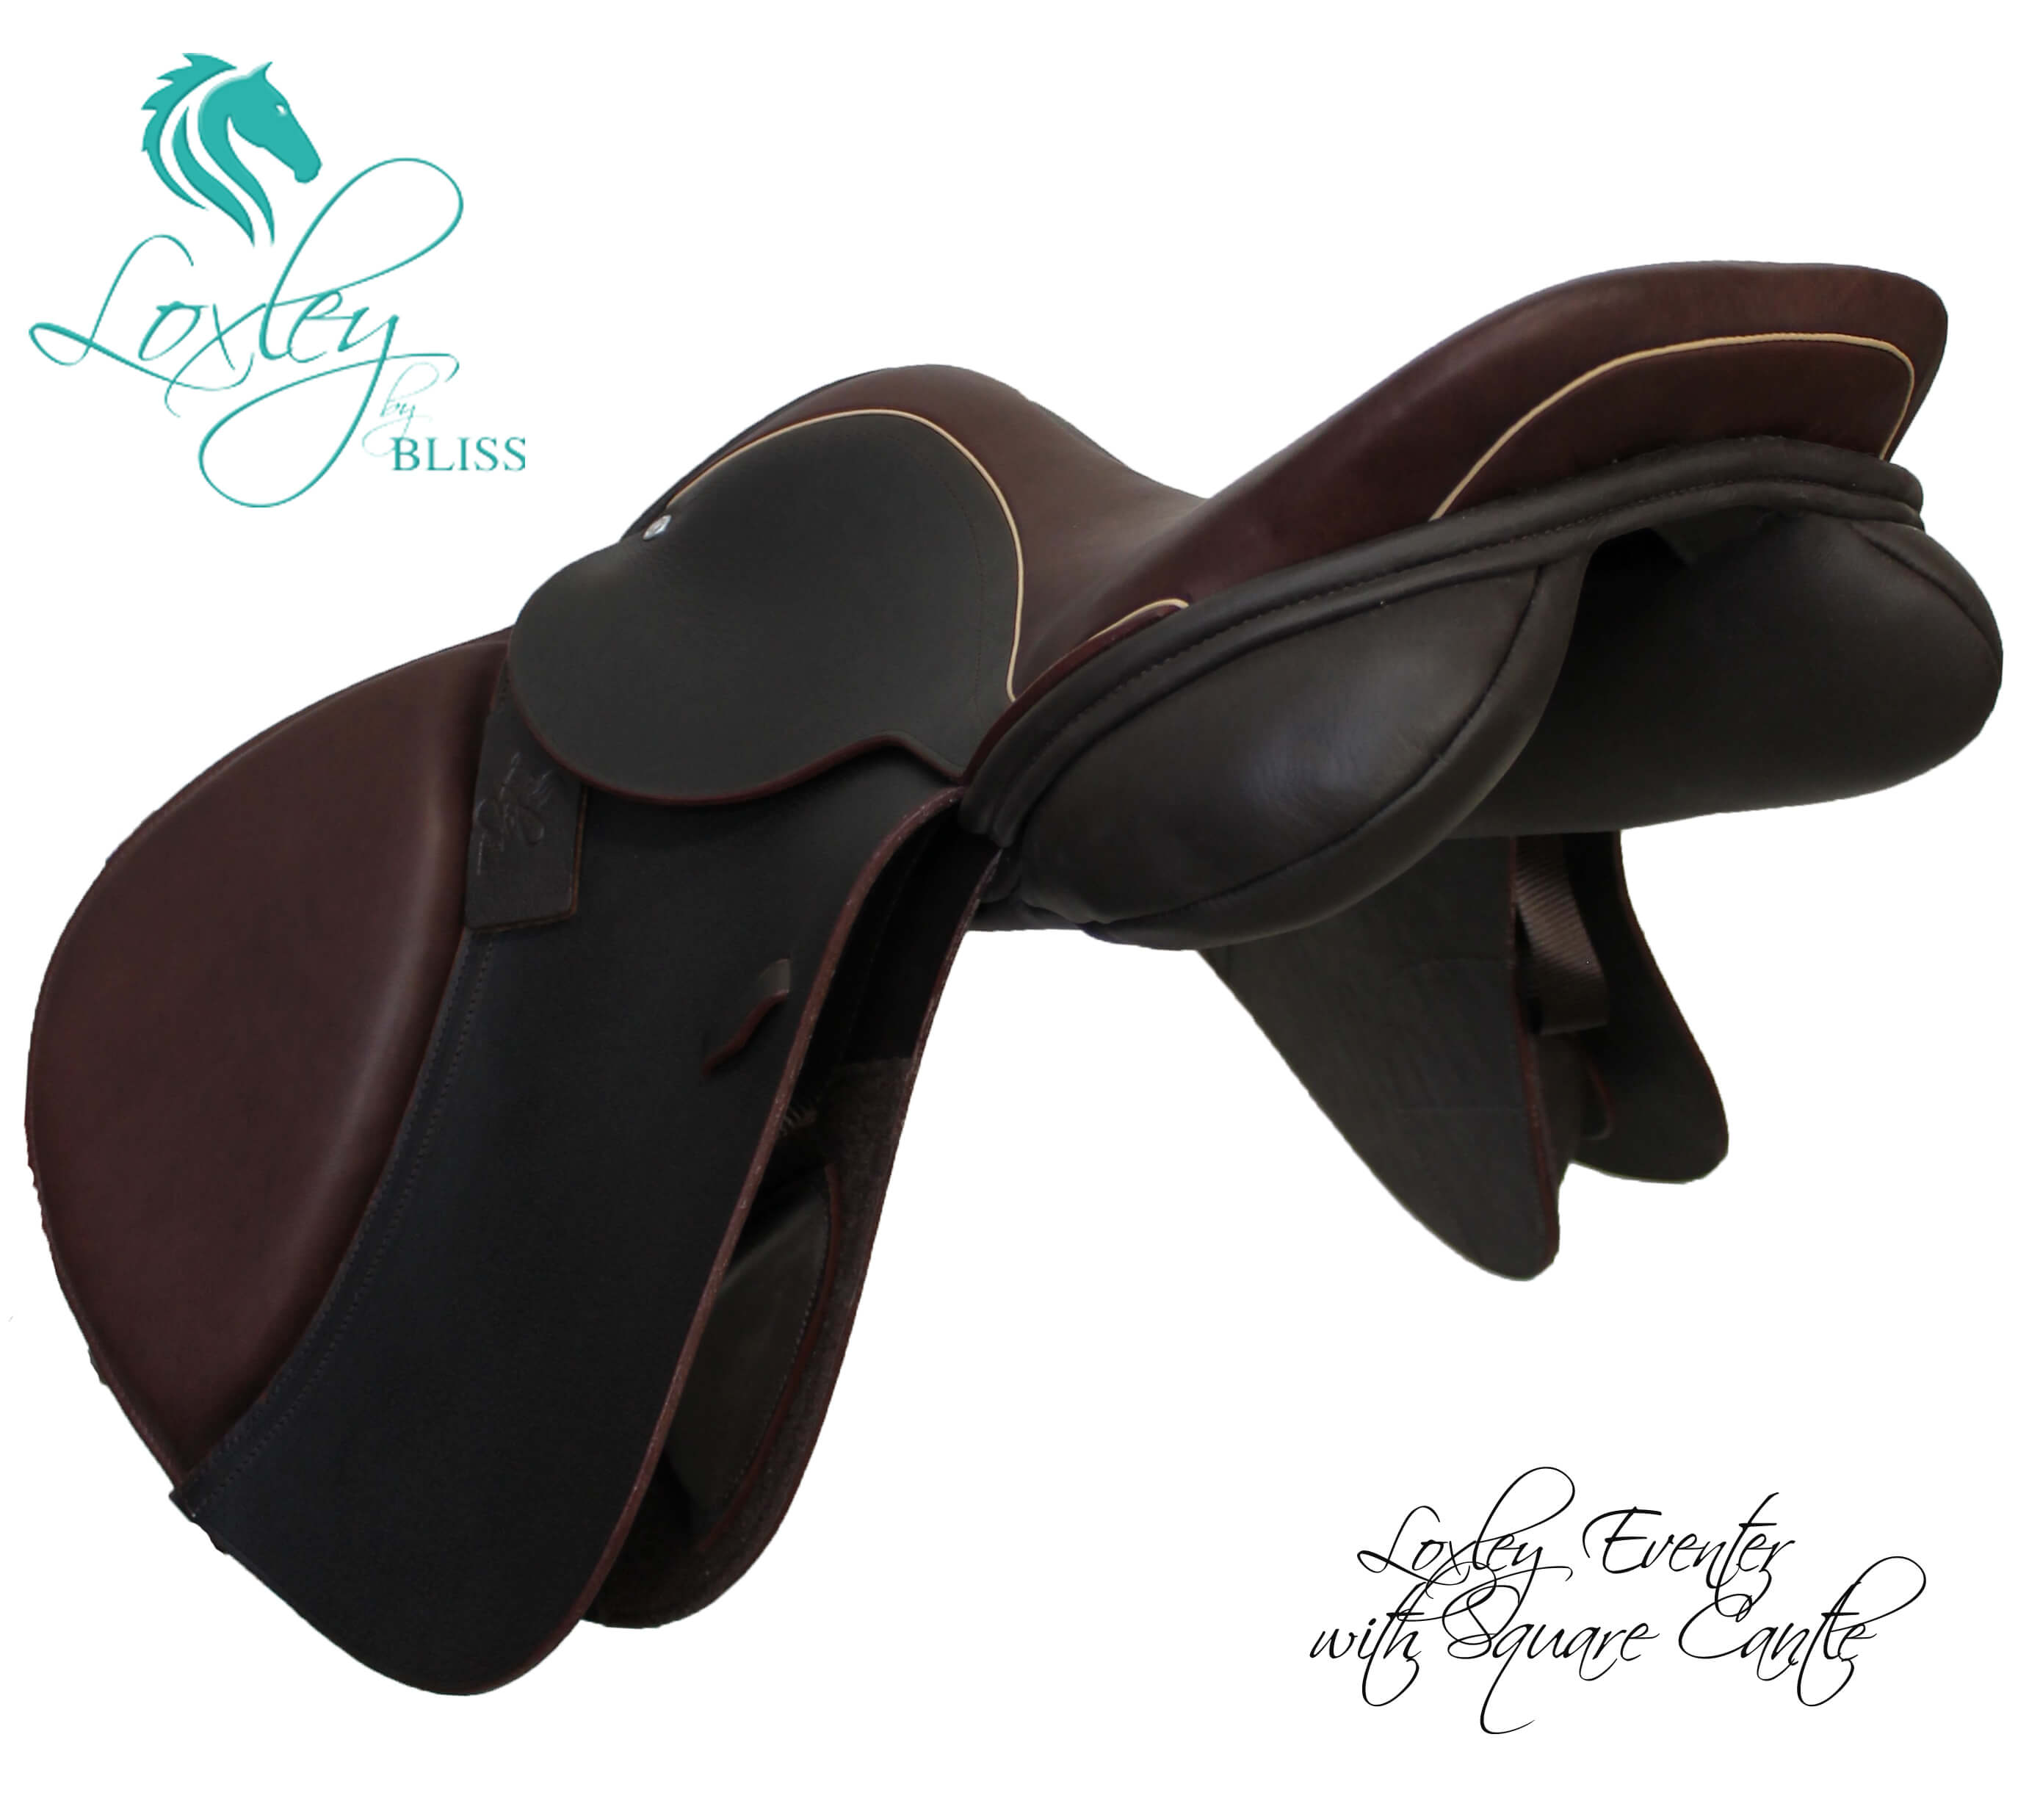 Square cantle eventer Loxley Saddle Image Template